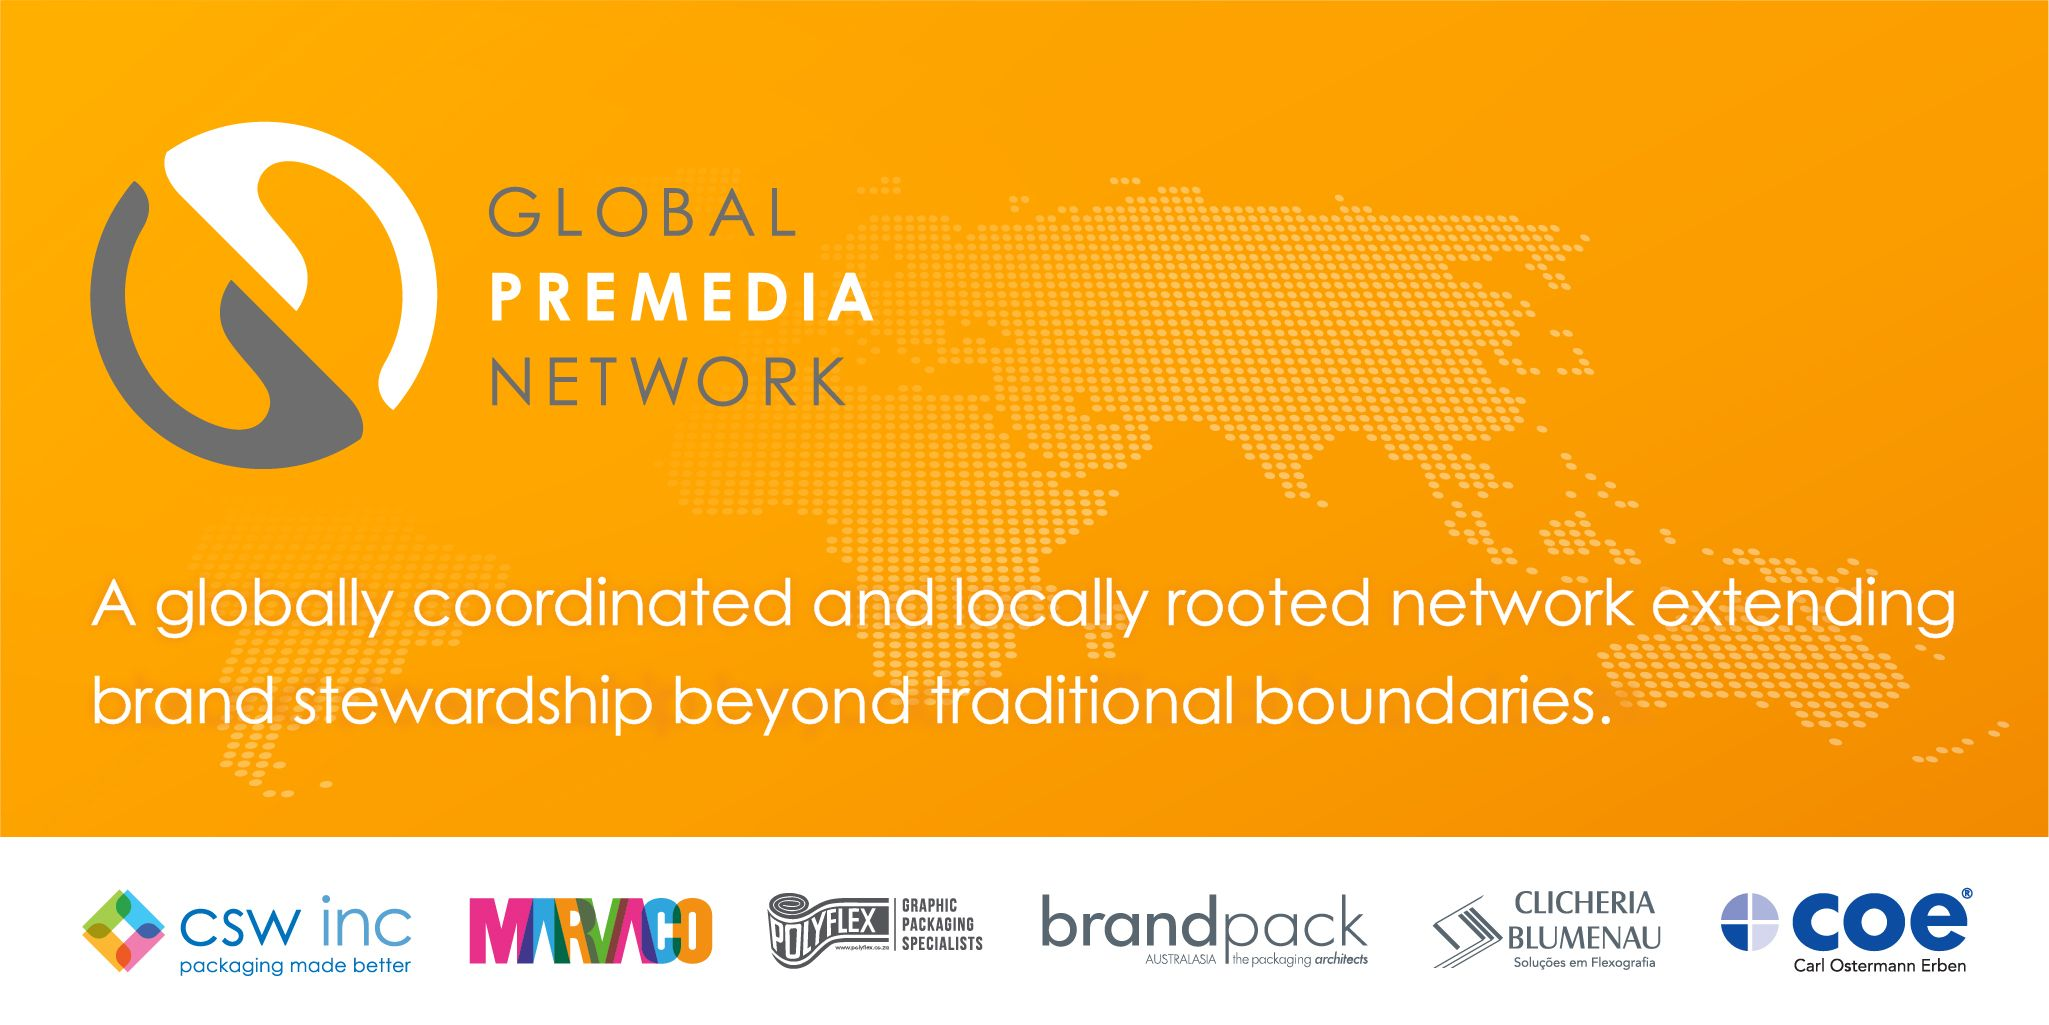 The Global Premedia Network